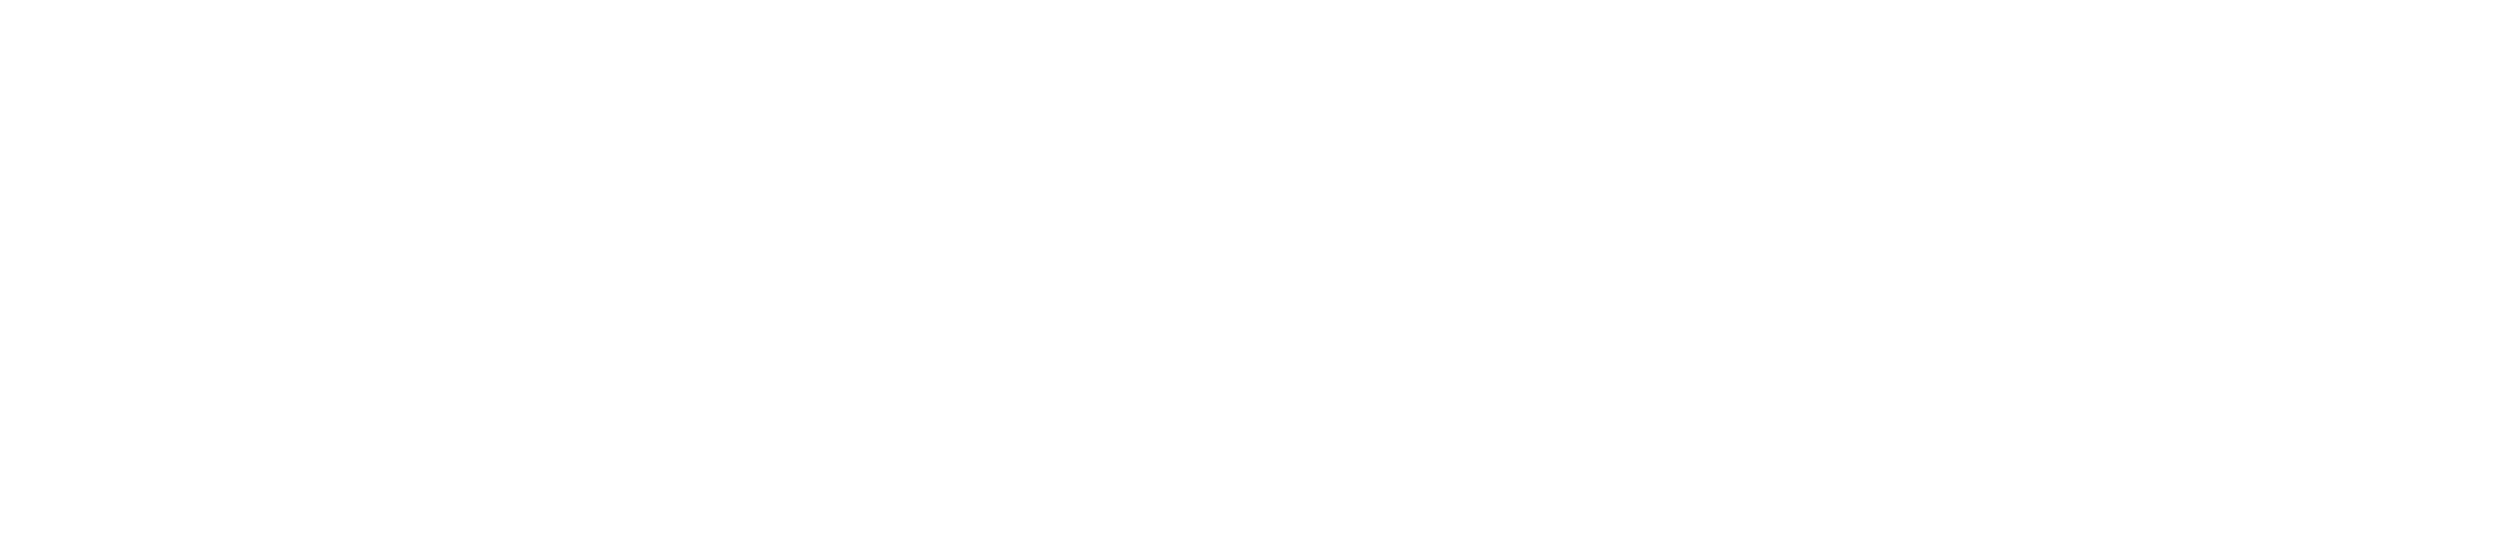 charter_wordmark-white.png